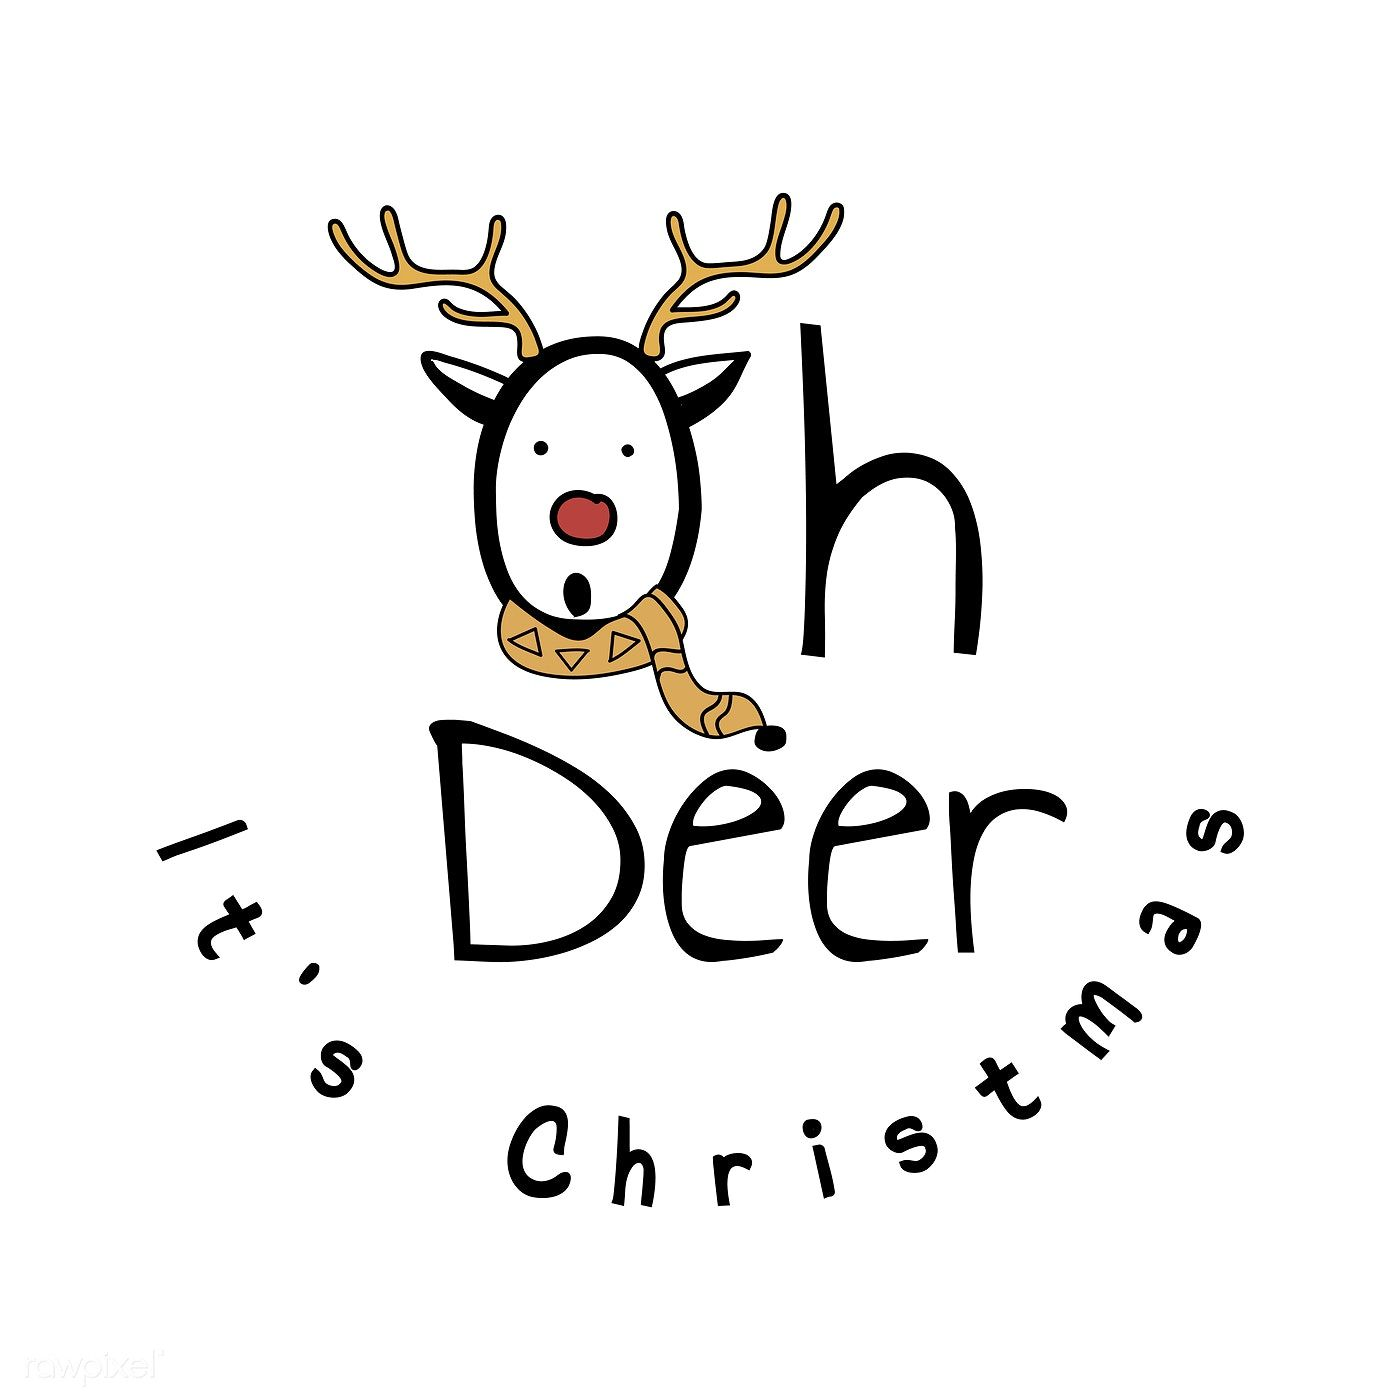 Oh Dear Its Christmas 2020 Download premium vector of Hand drawn Oh deer, it's Christmas